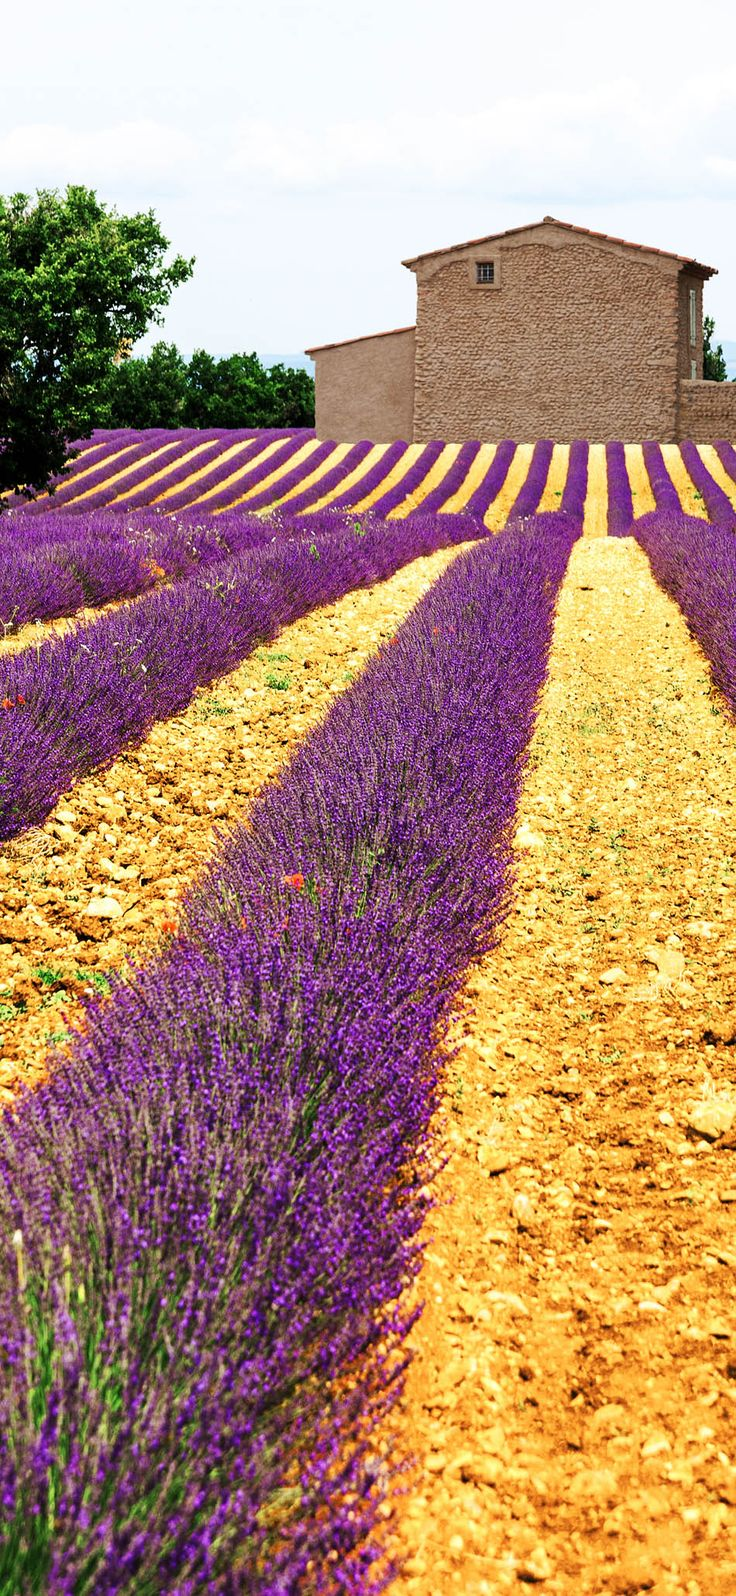 Amazing Lavender Field in Provence, France   |   13 Amazing Photos of Lavender Fields that will Rock your World